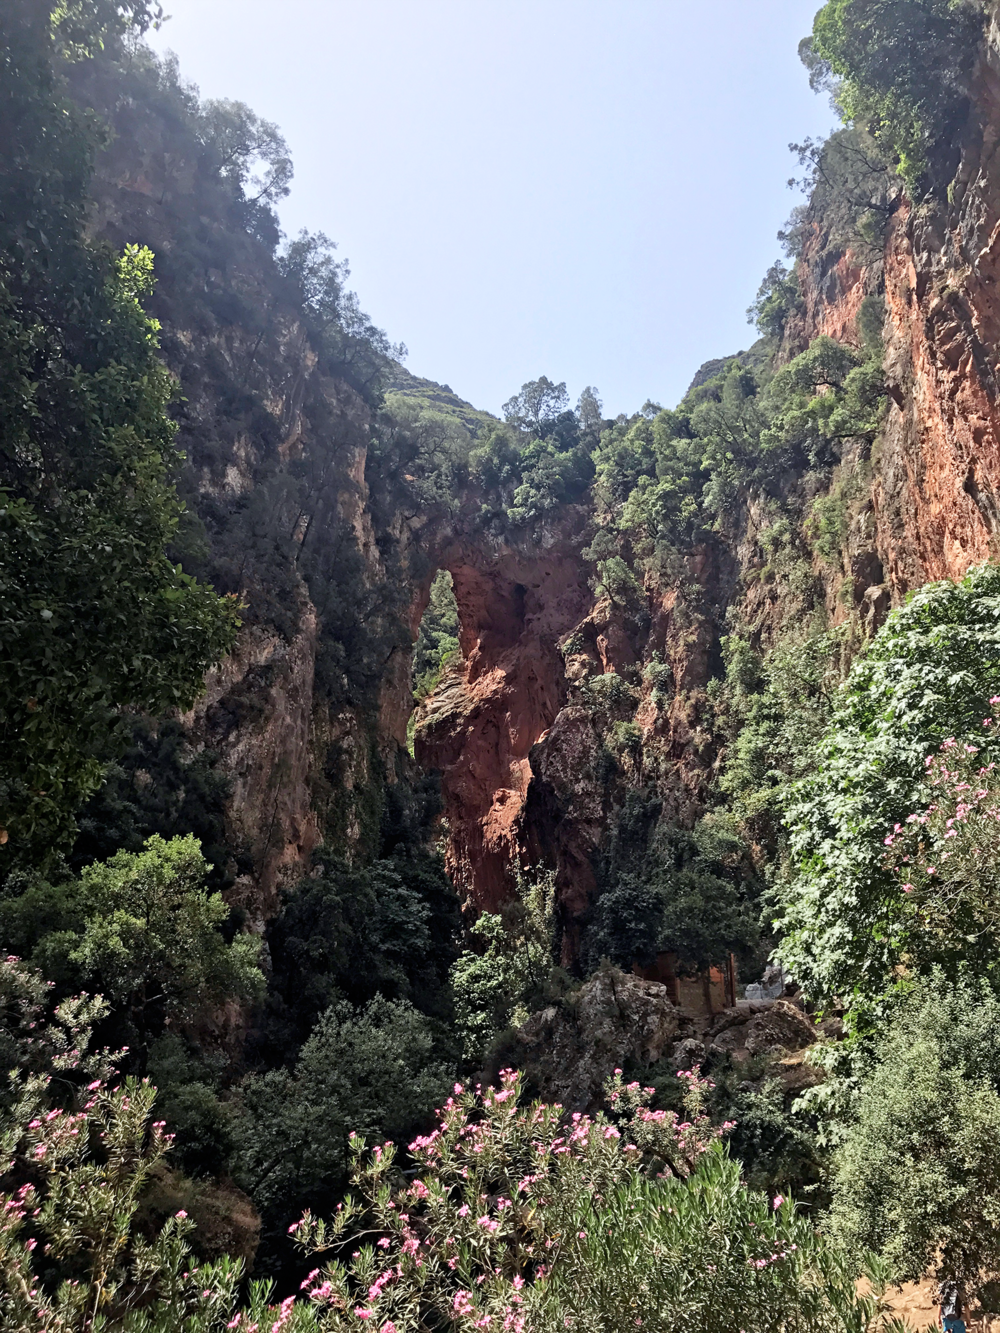 Hiking & Canyoneering in Akchour Morocco Gods Bridge | Photos of Morocco